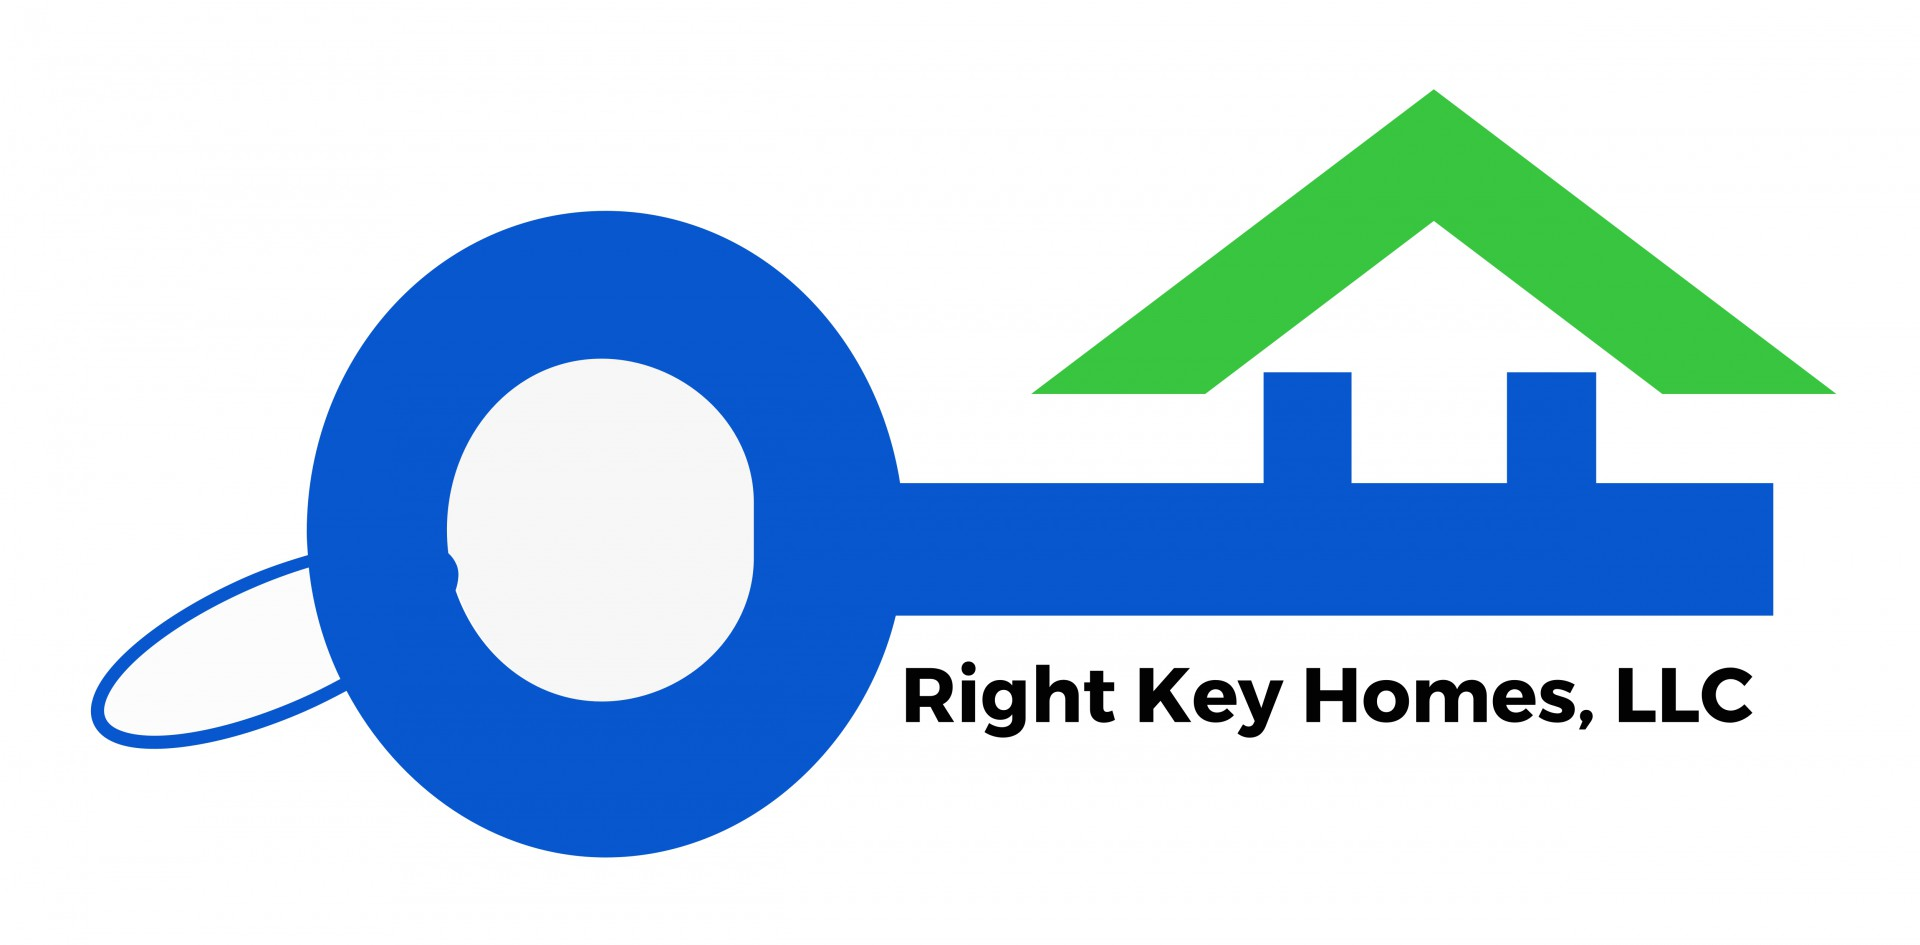 Right Key Homes